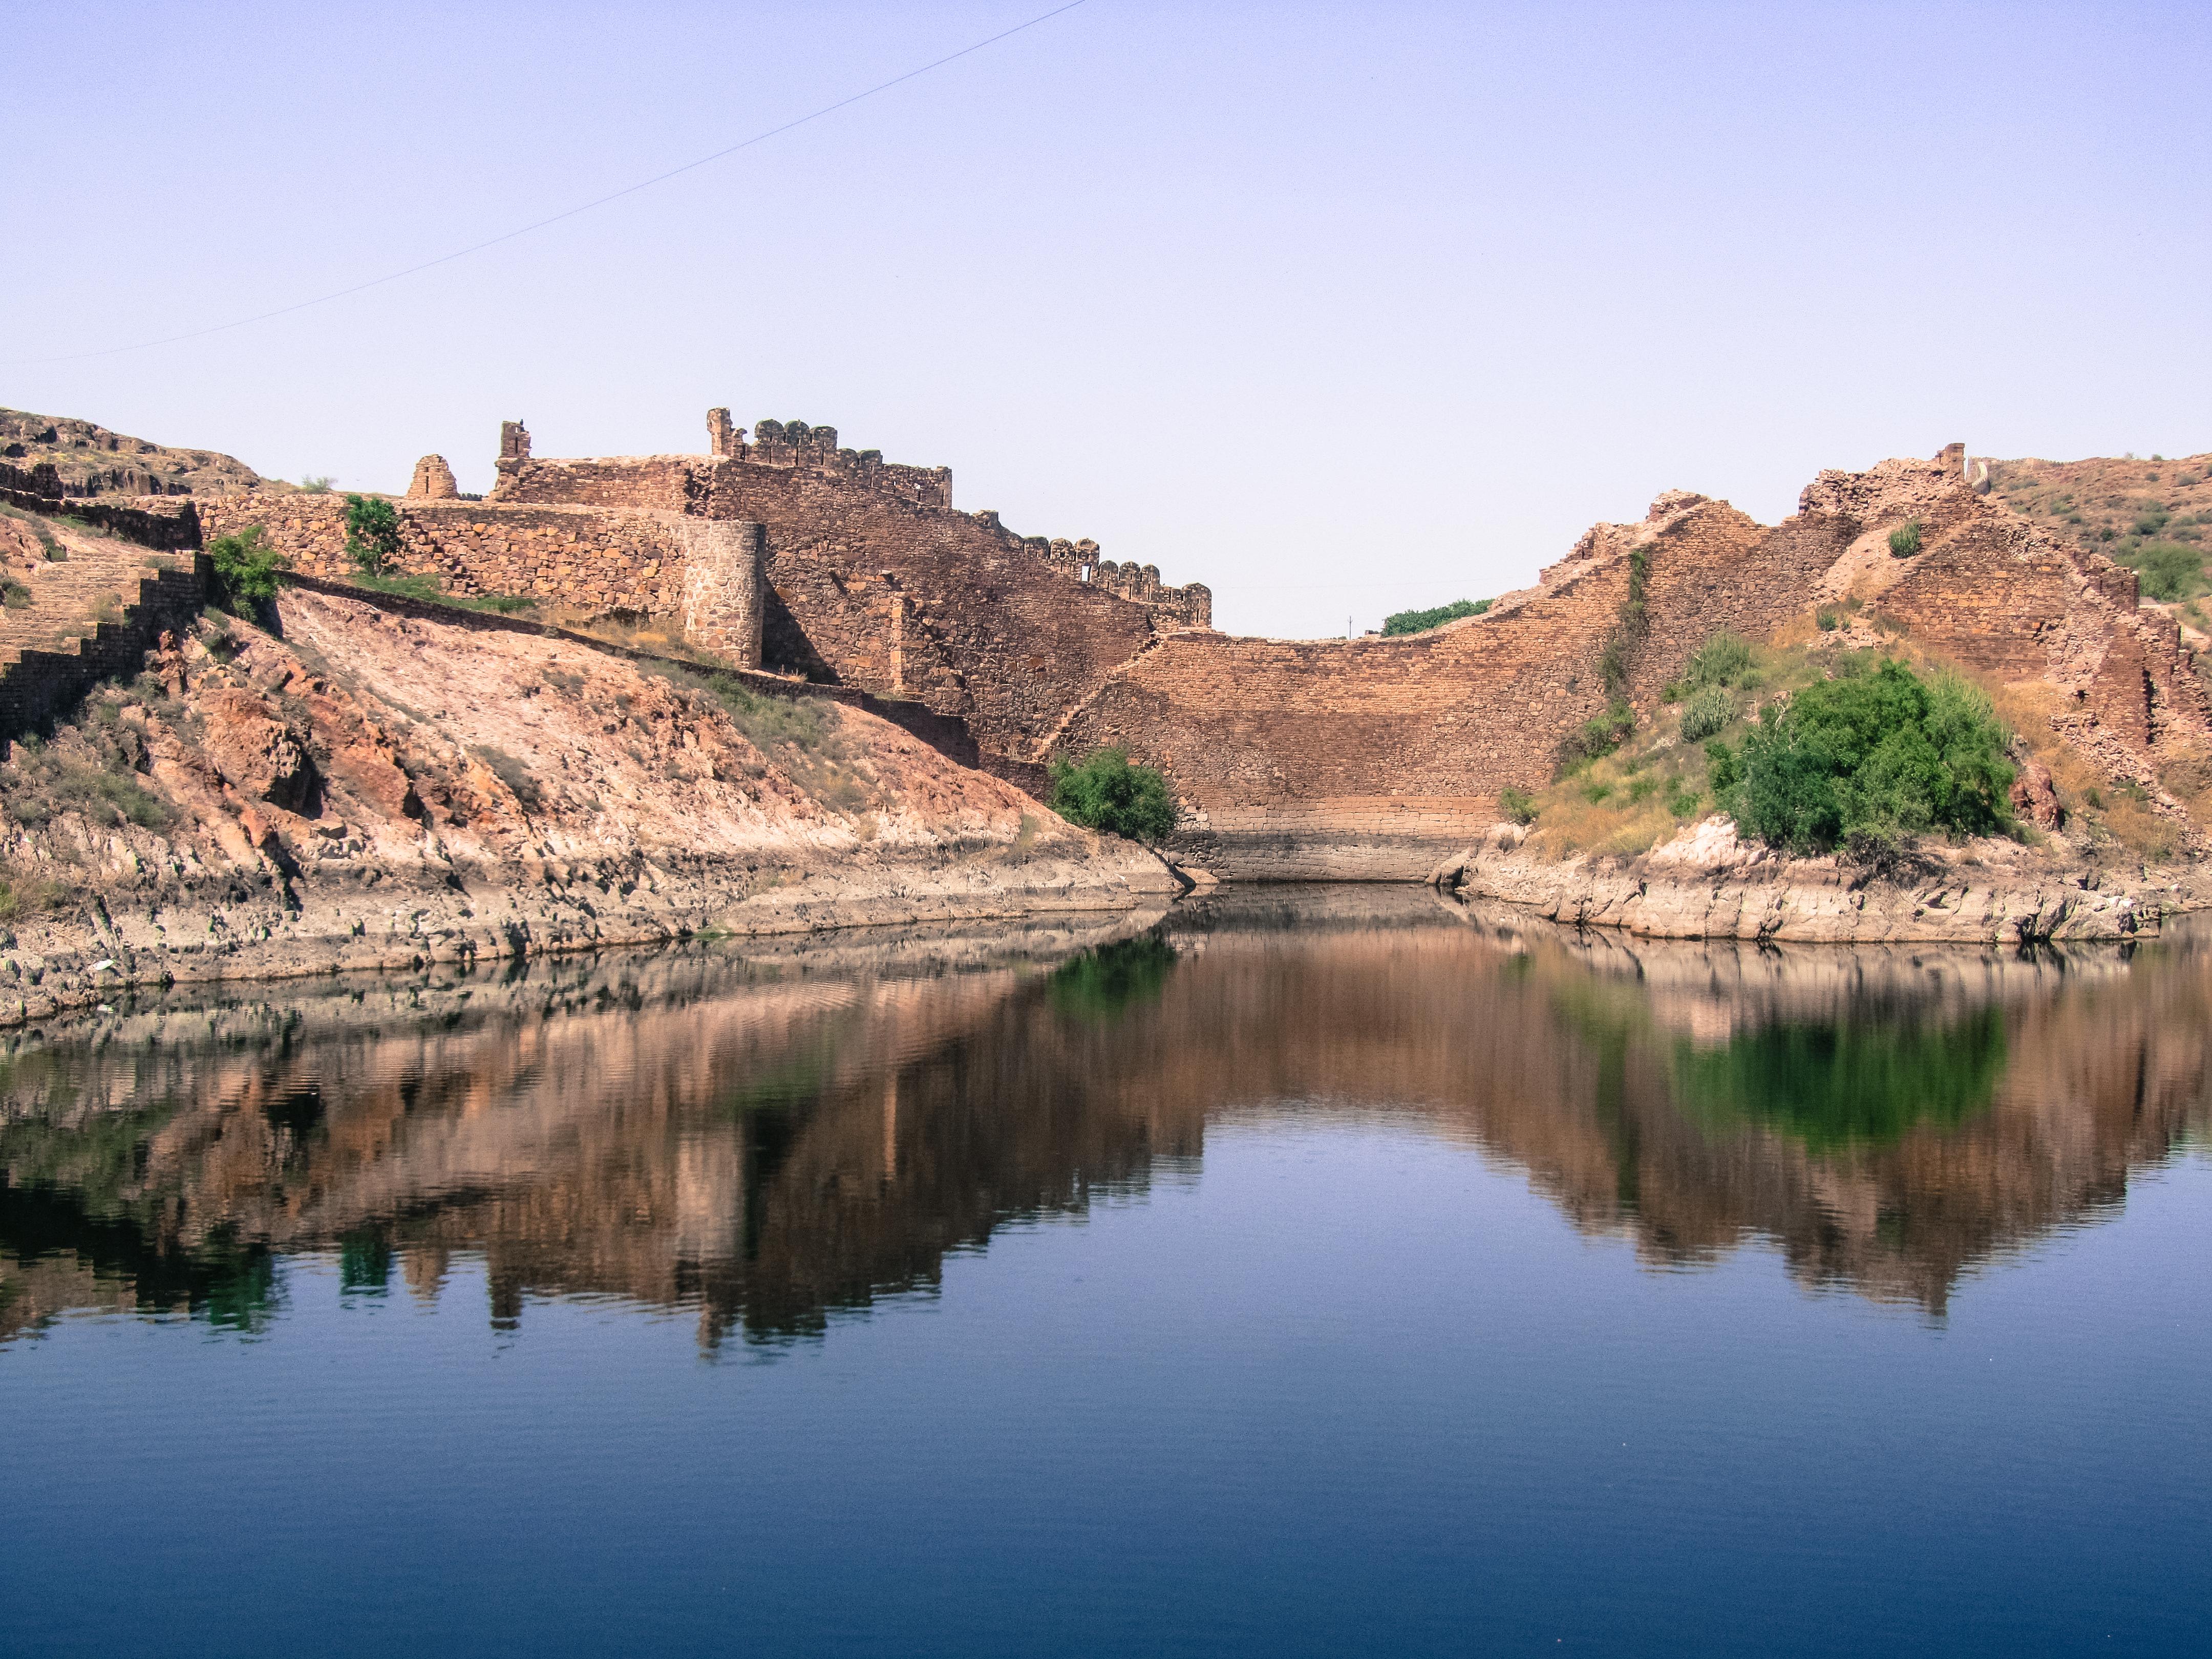 Water is the most valuable resource in a desert. Sourcing and management of water is critical in the parched landscape of Jodhpur. Its only natural source of water is the little rain the region receives. Jodhpur is possibly the only city in India to have a highly sophisticated water infrastructure which harvests, conserves and manages rainwater